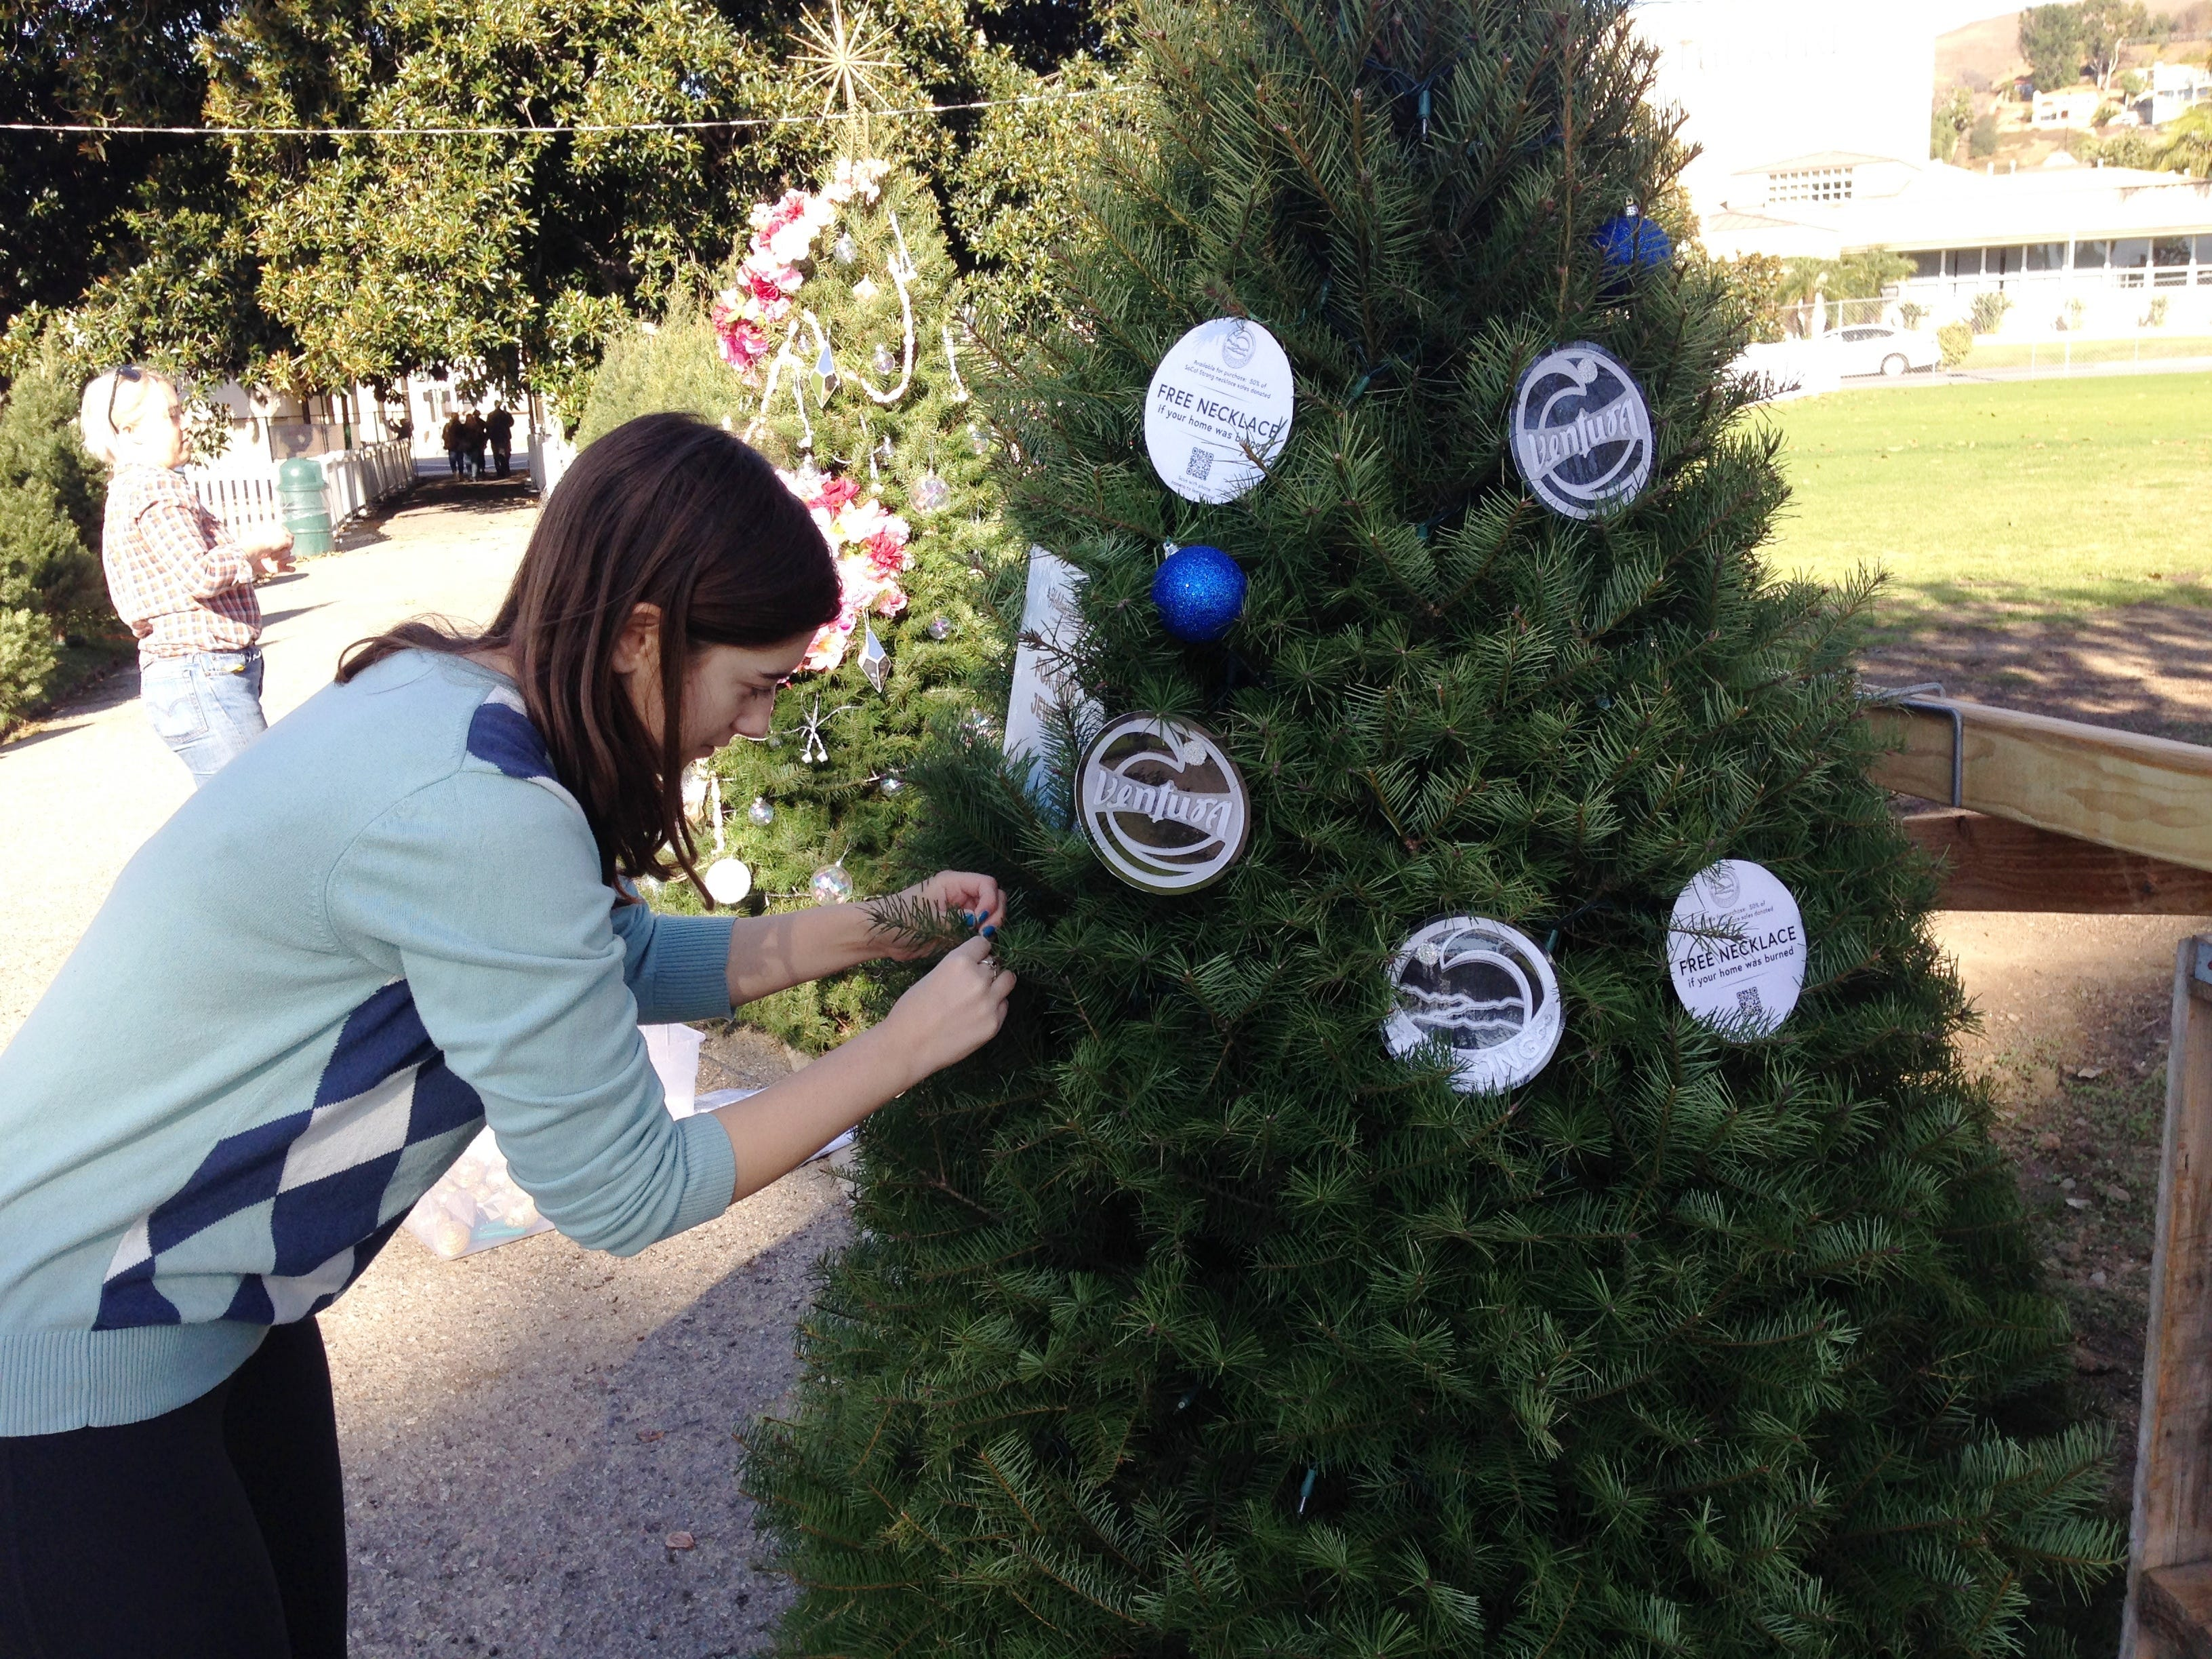 Charlotte Fox decorates a Christmas tree for Holidays at the Plaza, an event at Plaza Park in Ventura running Dec. 7 through Jan. 2 that will showcase more than 100 elaborately decorated trees.